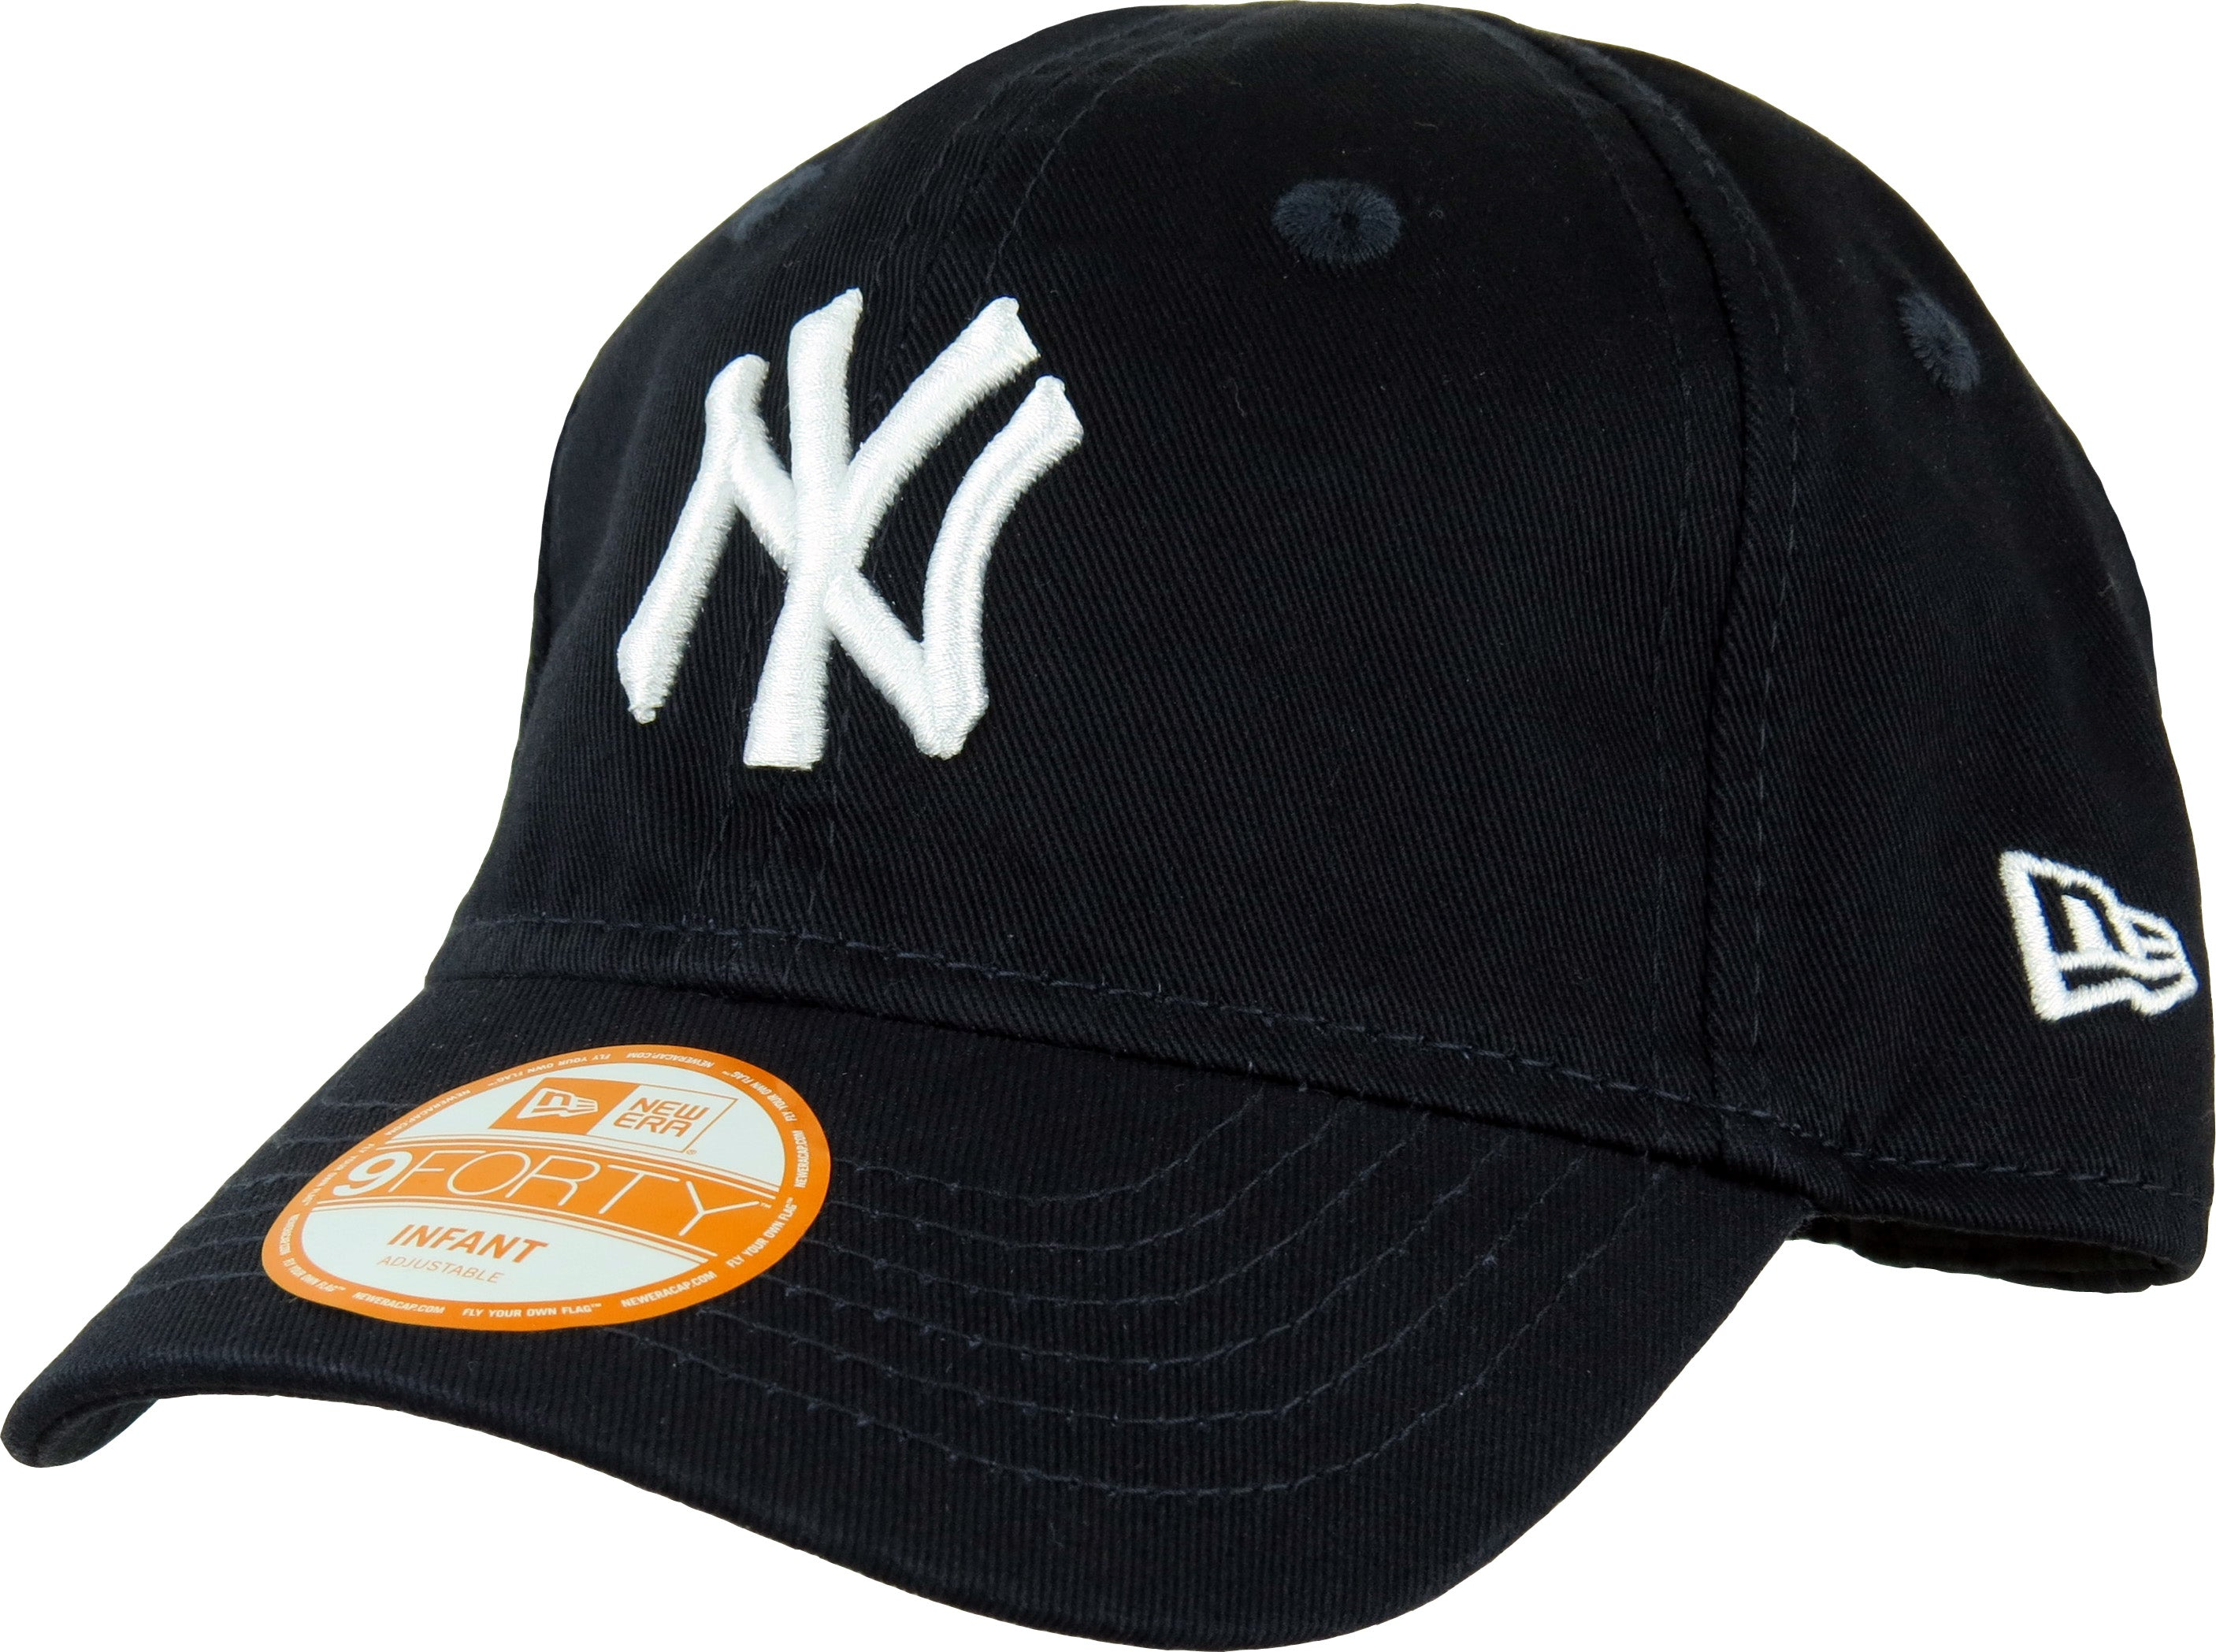 a091052cc28 New Era 940 My 1st NY Yankees Stretch Fit Infants Navy Cap (0-2 years) –  lovemycap